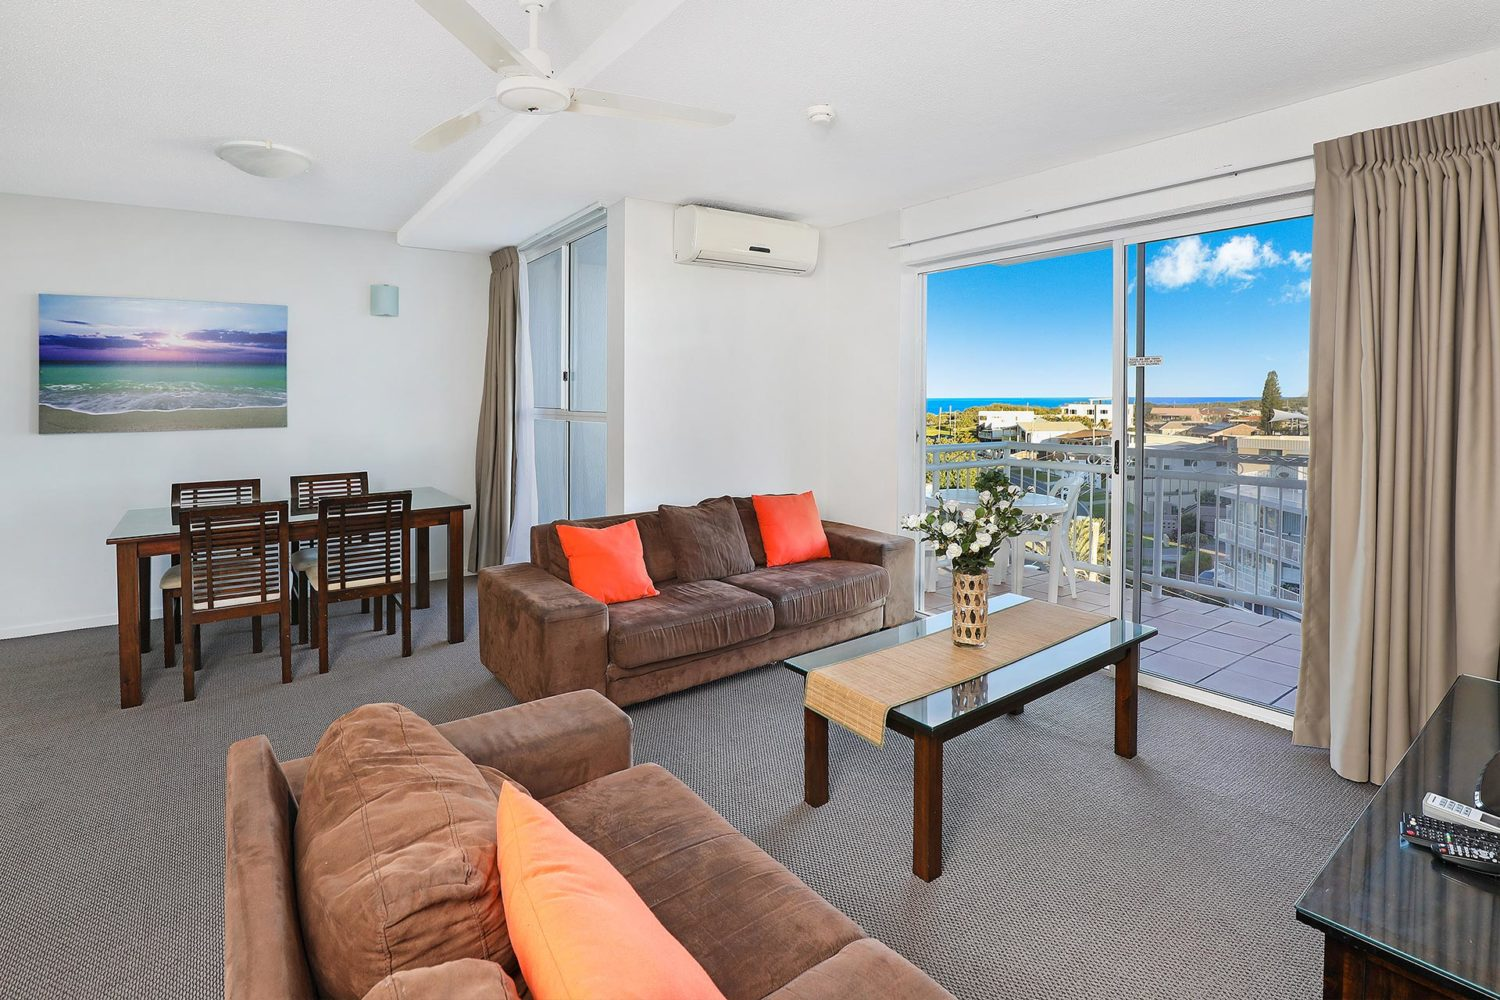 1920-1-2-bedroom-accommodation-buddina-kawana2